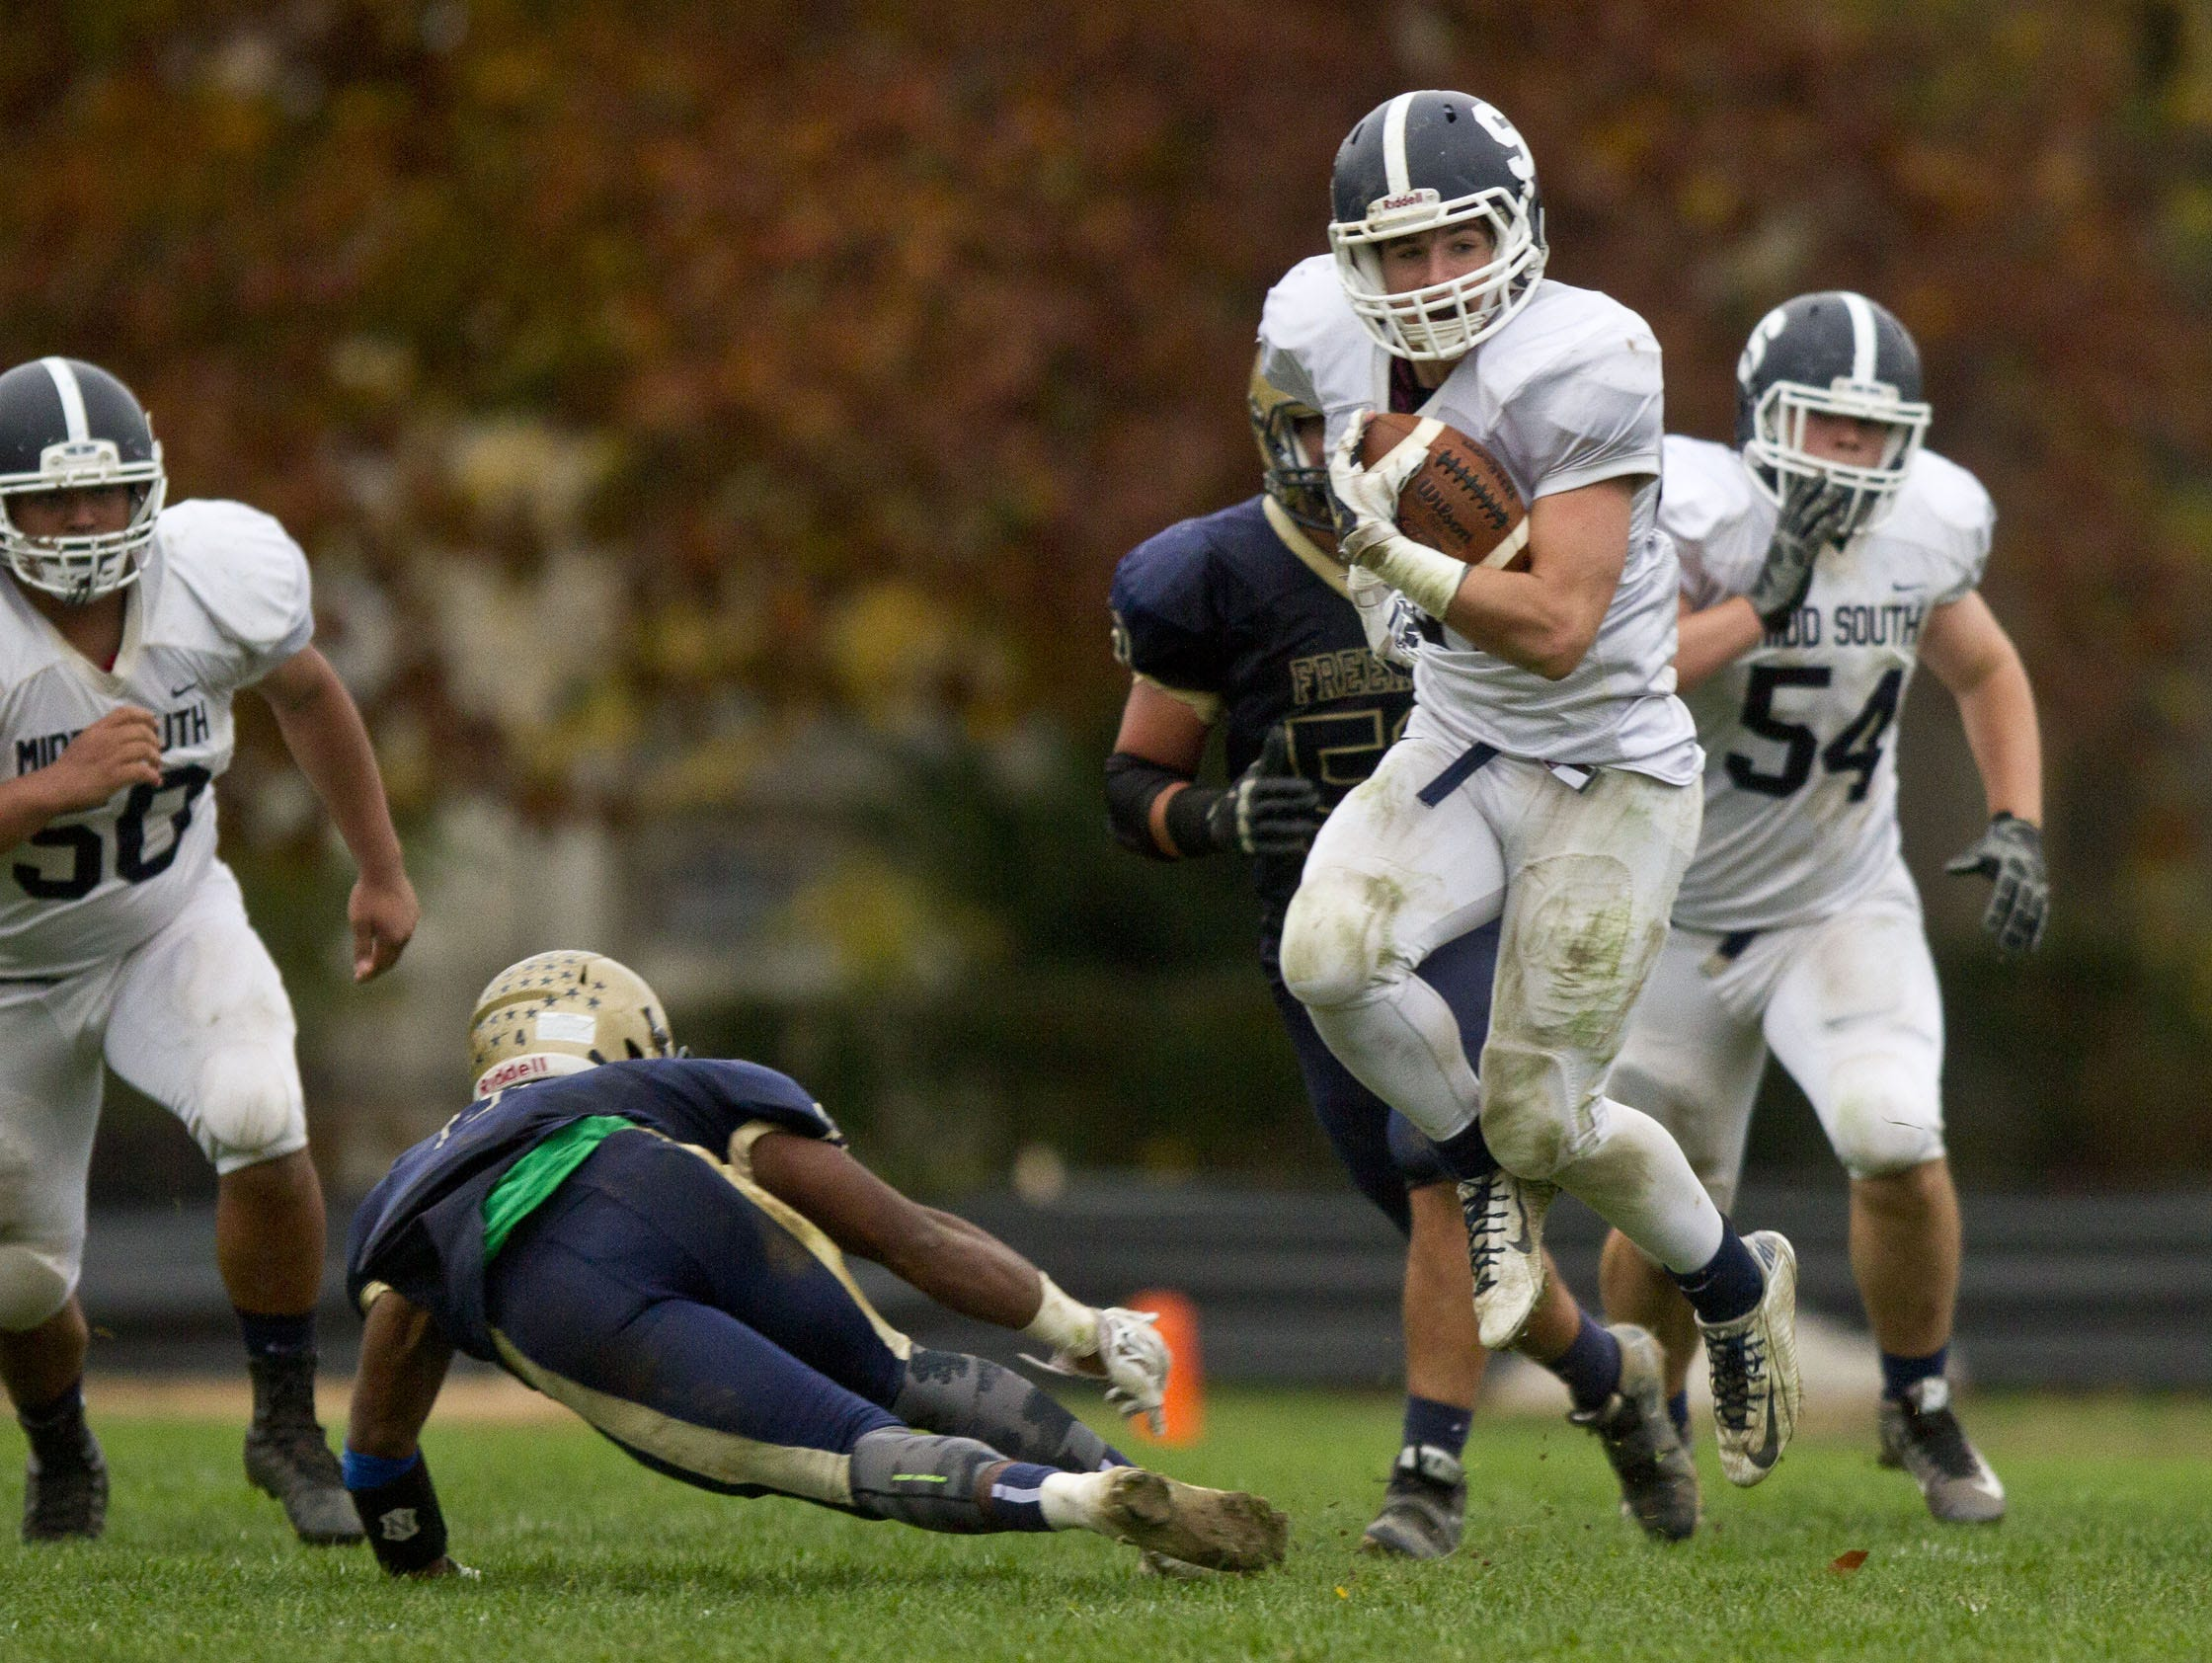 Middletown South, with senior running back Cole Rogers being one of its key players, is our pick to win the NJSIAA North II Group IV championship